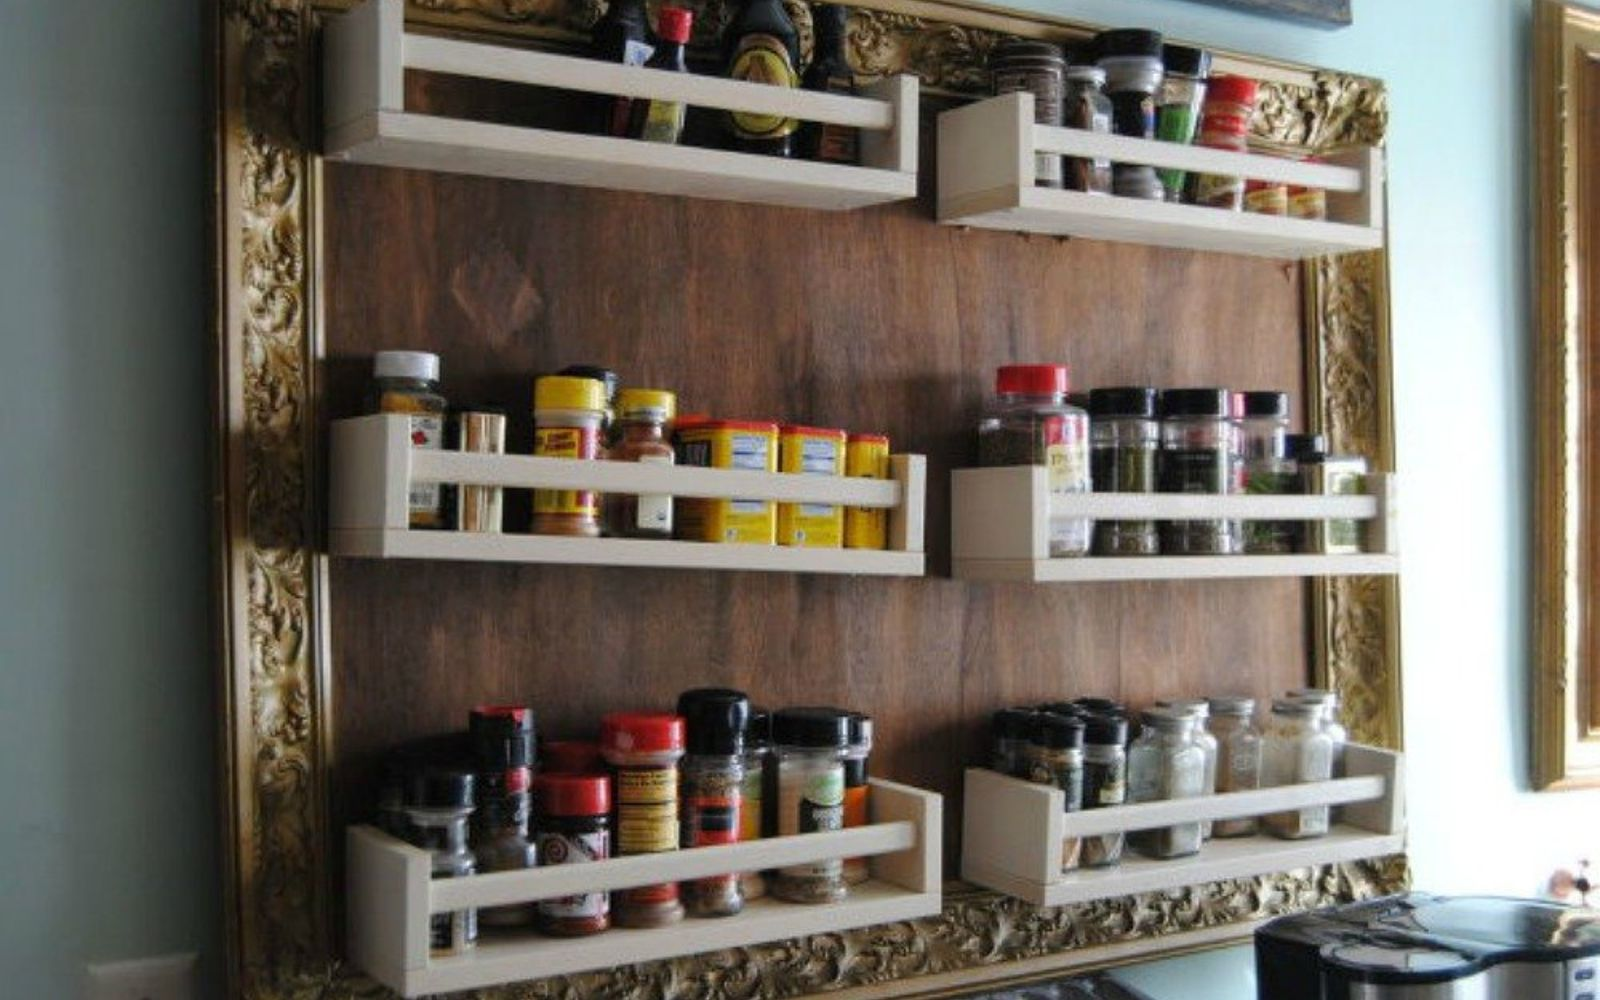 spice rack ideas 12 space saving hacks for your tight kitchen hometalk 31109